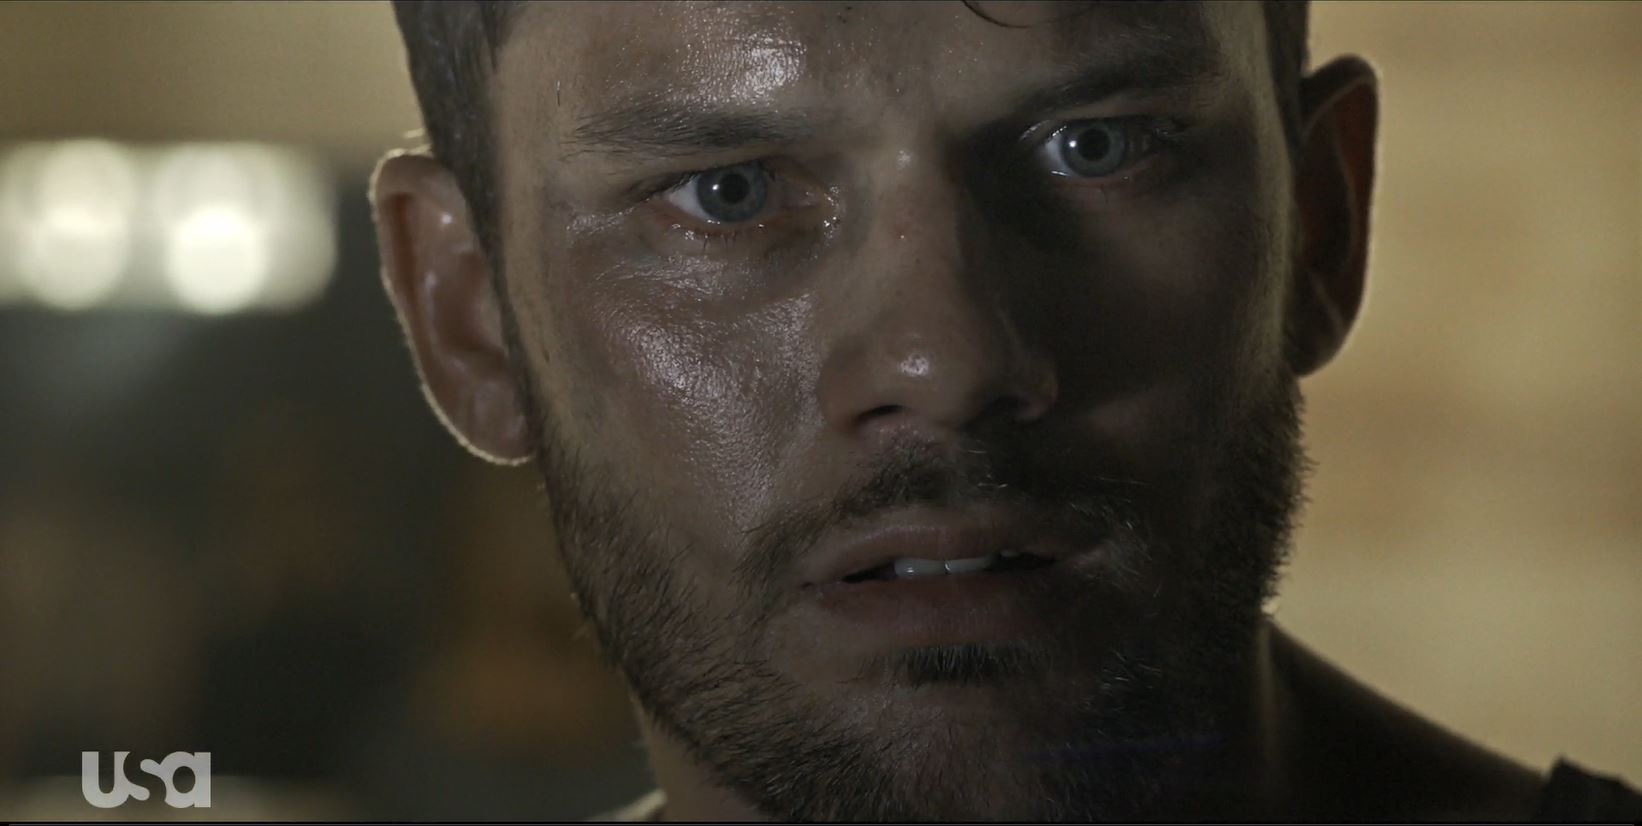 Treadstone Review - John played by Jeremy Irvine